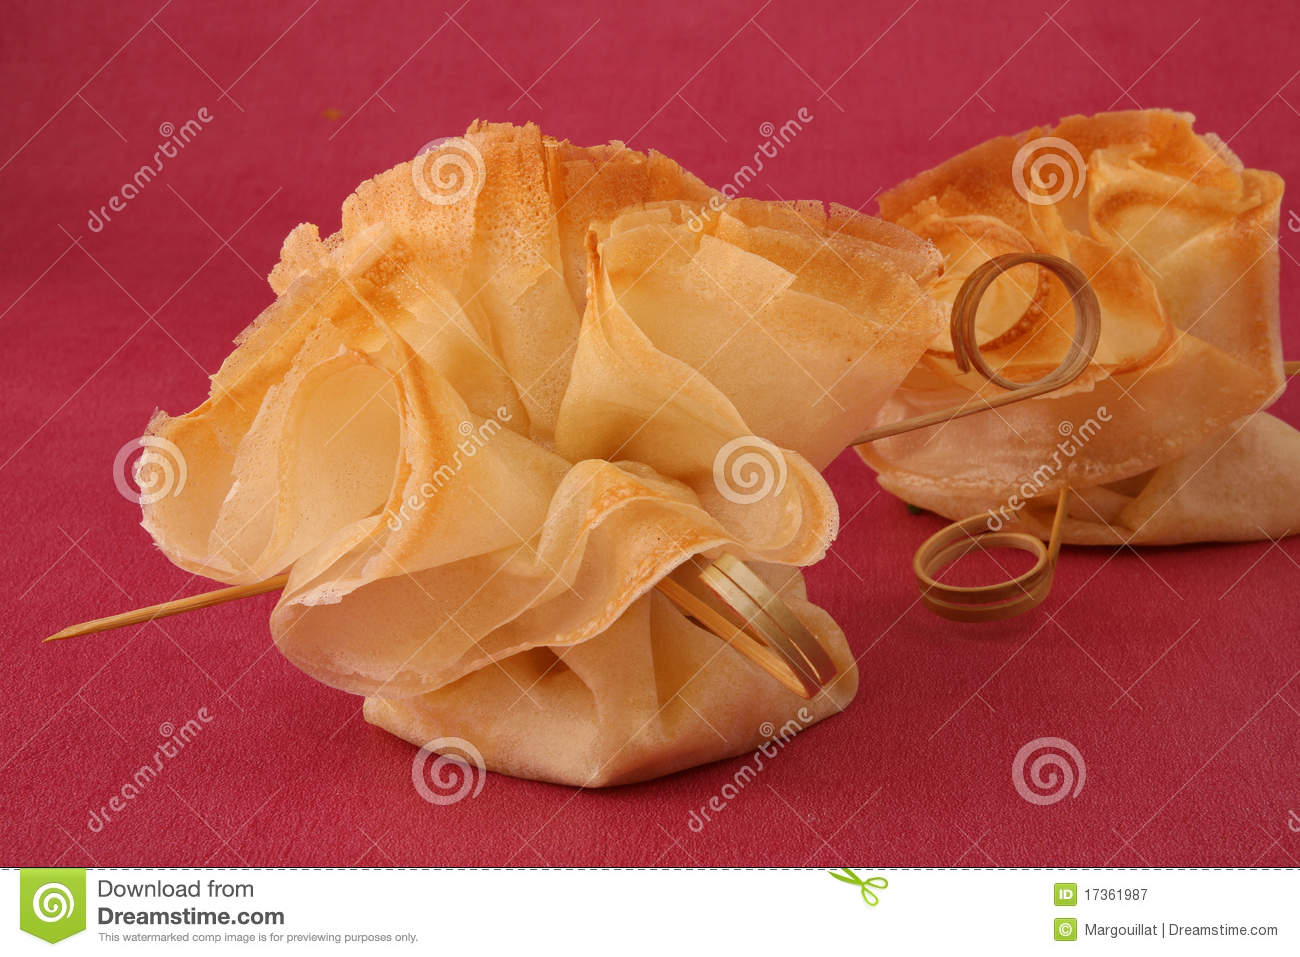 Filo garnish royalty free stock photography image 17361987 for Canape garnishes